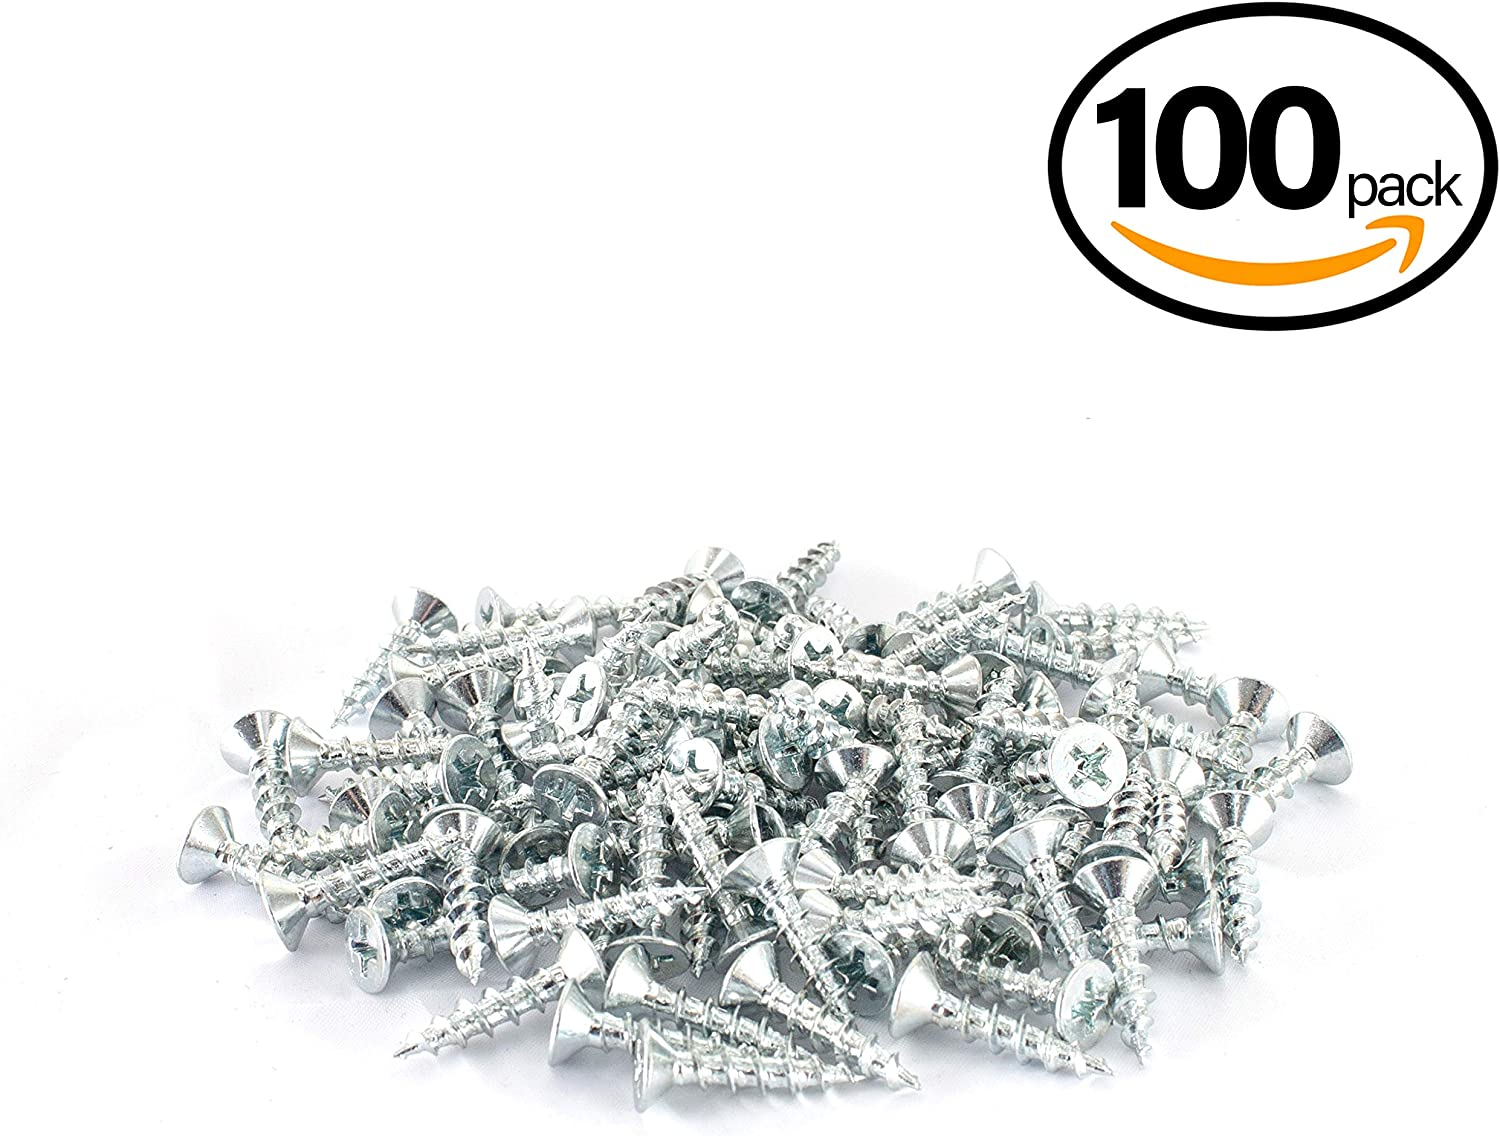 "Woodworking Screw Zinc Plated Design 100 PK POWERTEC Wood QWS1003 Phillips Flat Head #6 x 1//2/"" Deep Thread Nickel"